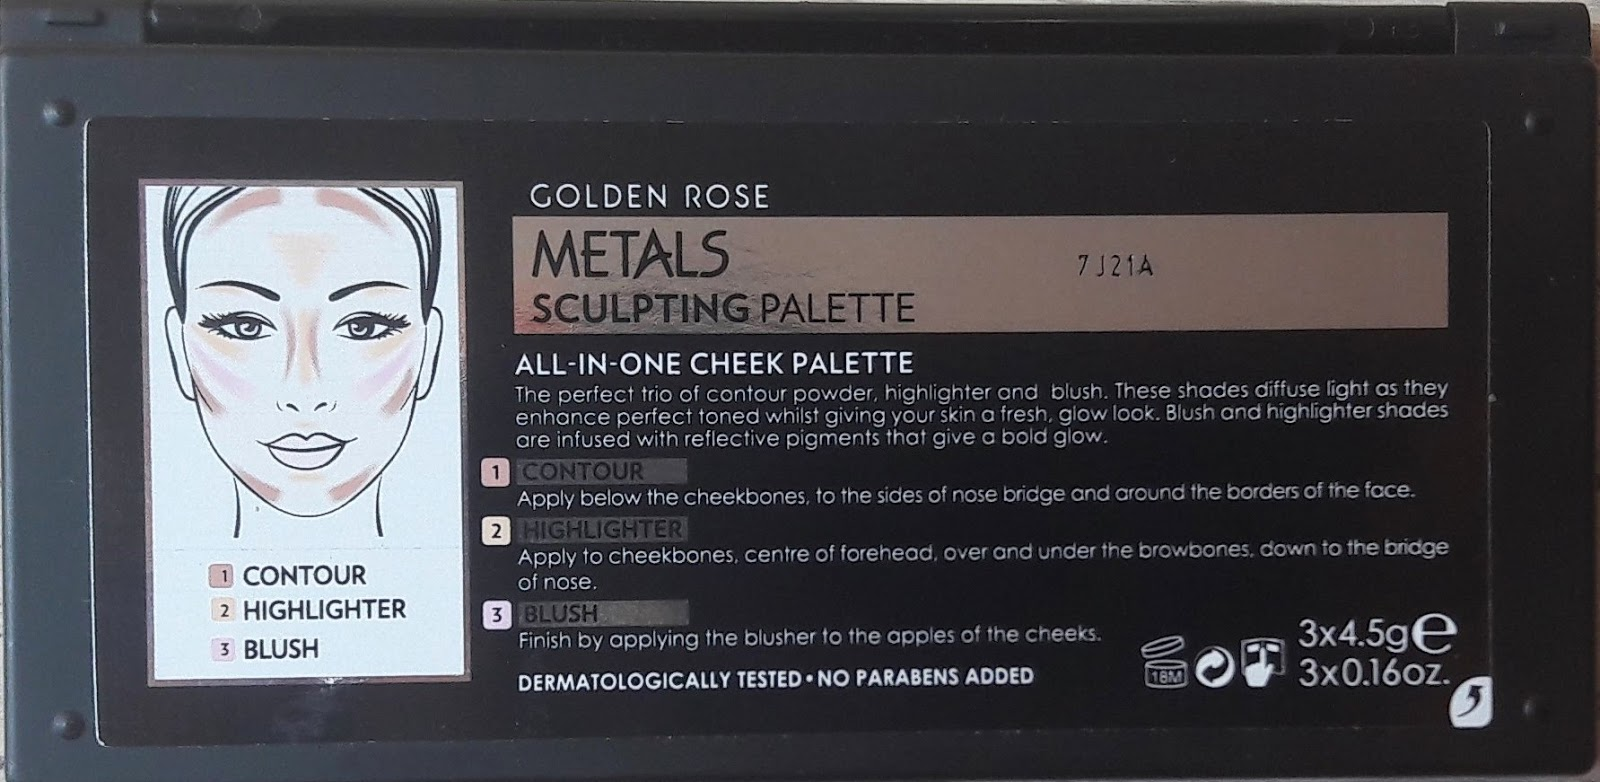 Metals Sculpting Palette de Golden Rose / Cookie's Make Up